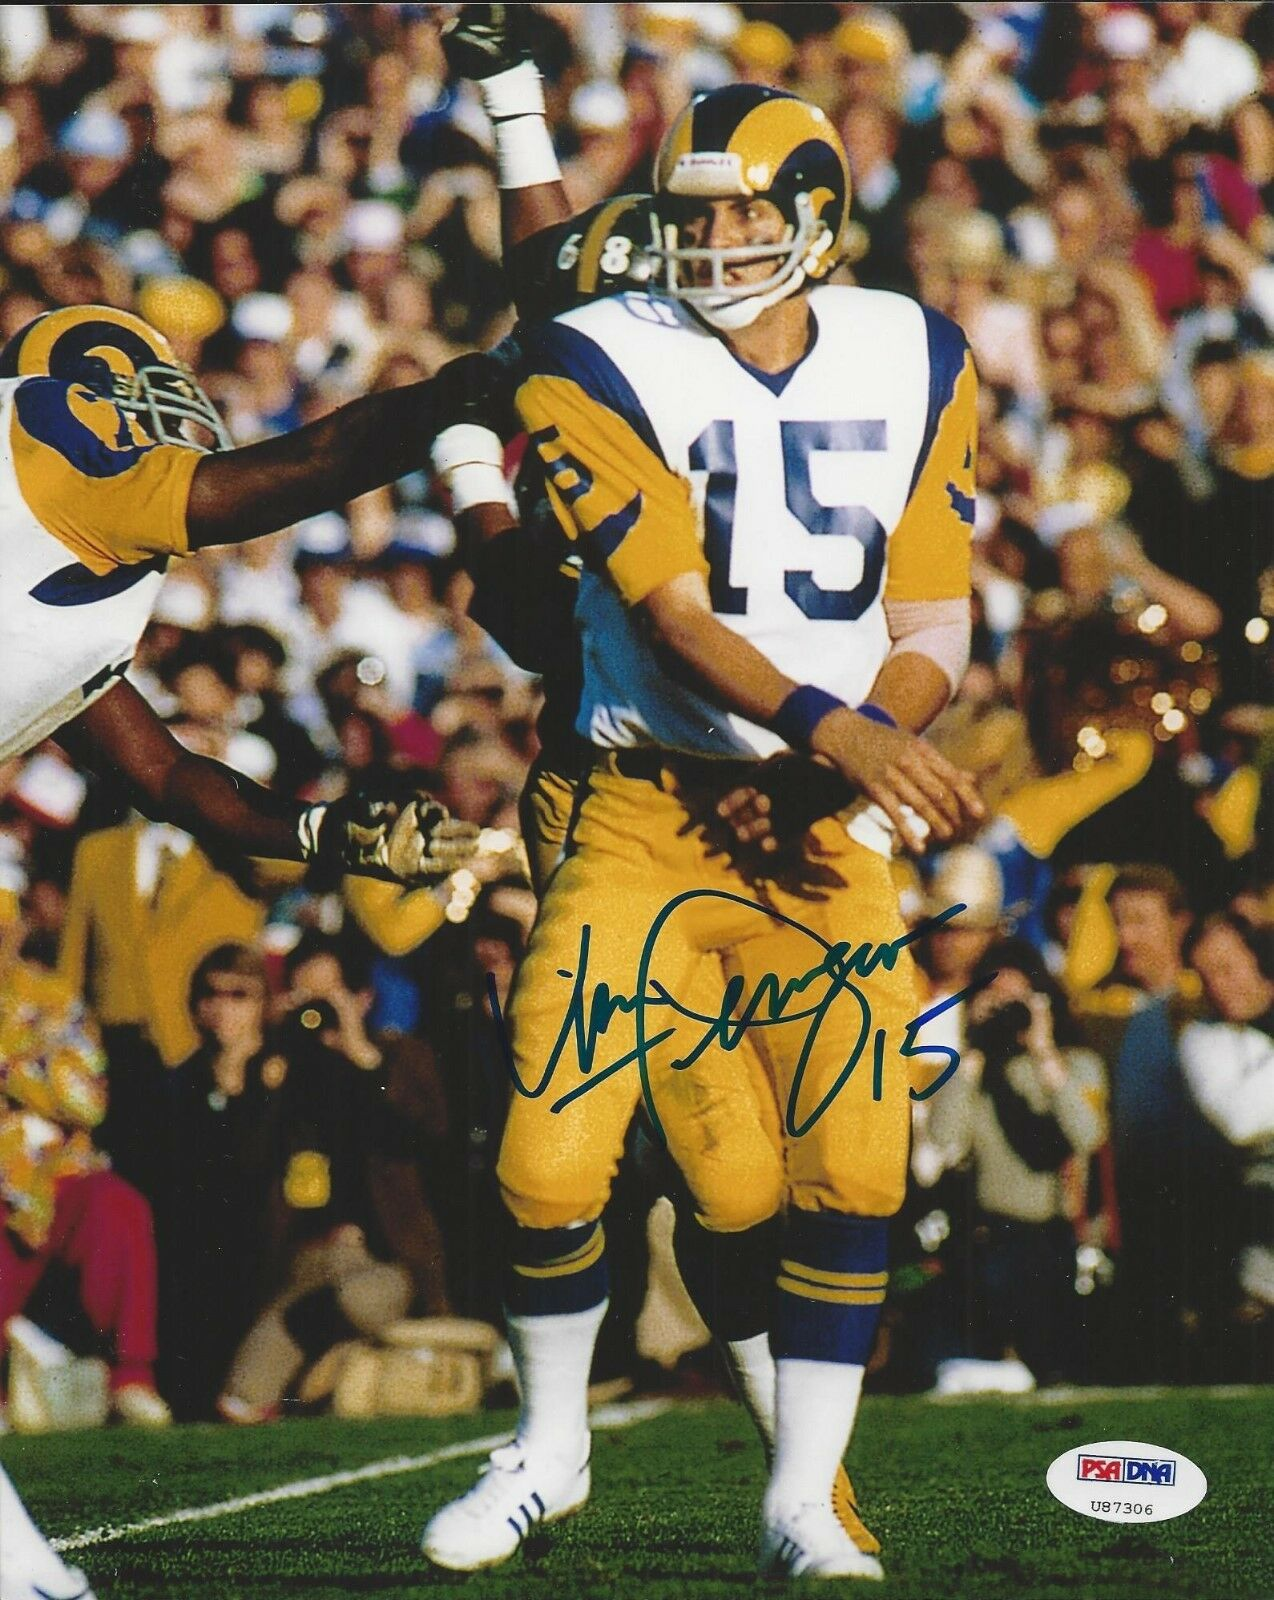 Vince Ferragamo Los Angeles Rams Signed 8x10 PSA/DNA #U87306